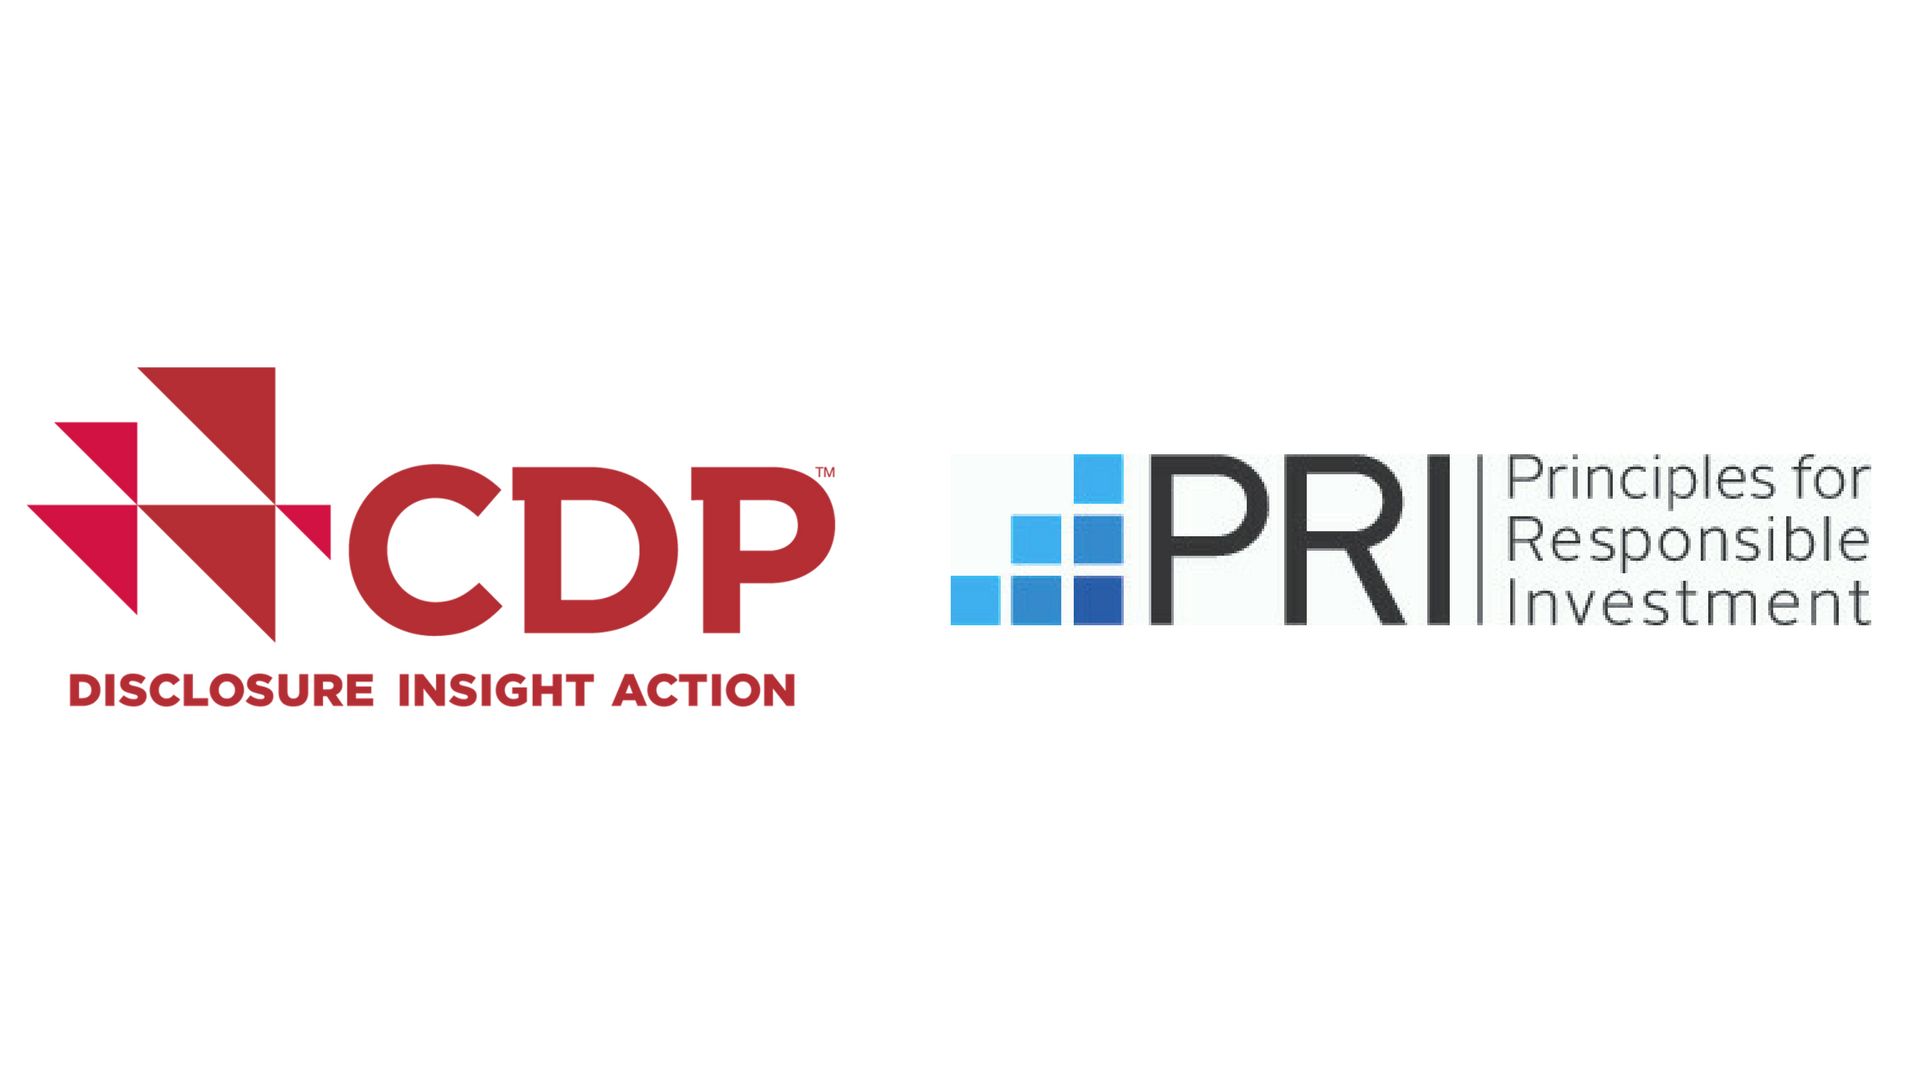 Supported by CDP and PRI